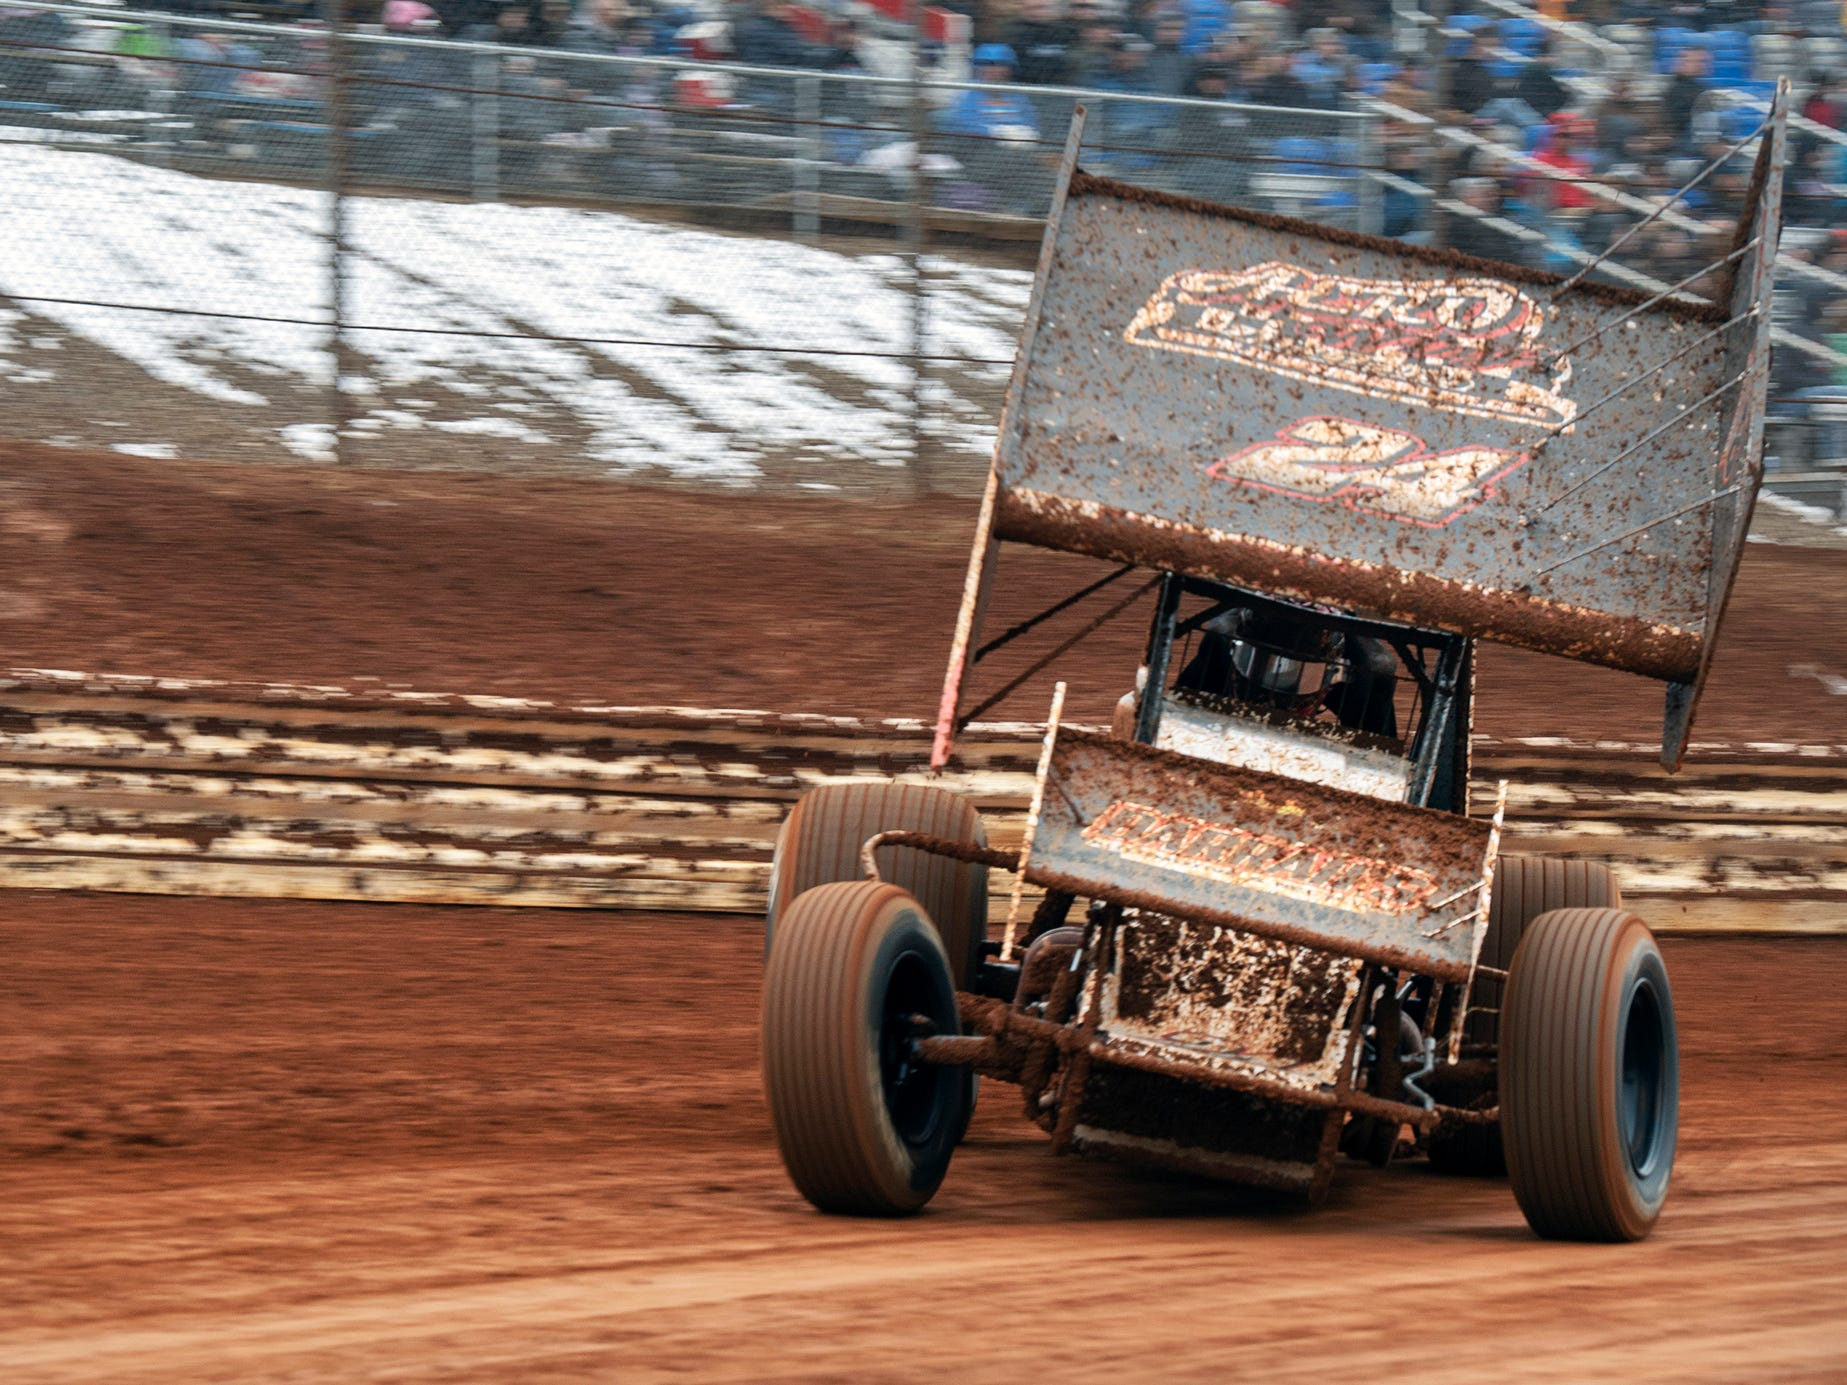 Lucas Wolfe takes the first turn during the Lincoln Speedway Ice Breaker 30 on Sunday near Abbottstown. Wolfe went on to win the race.